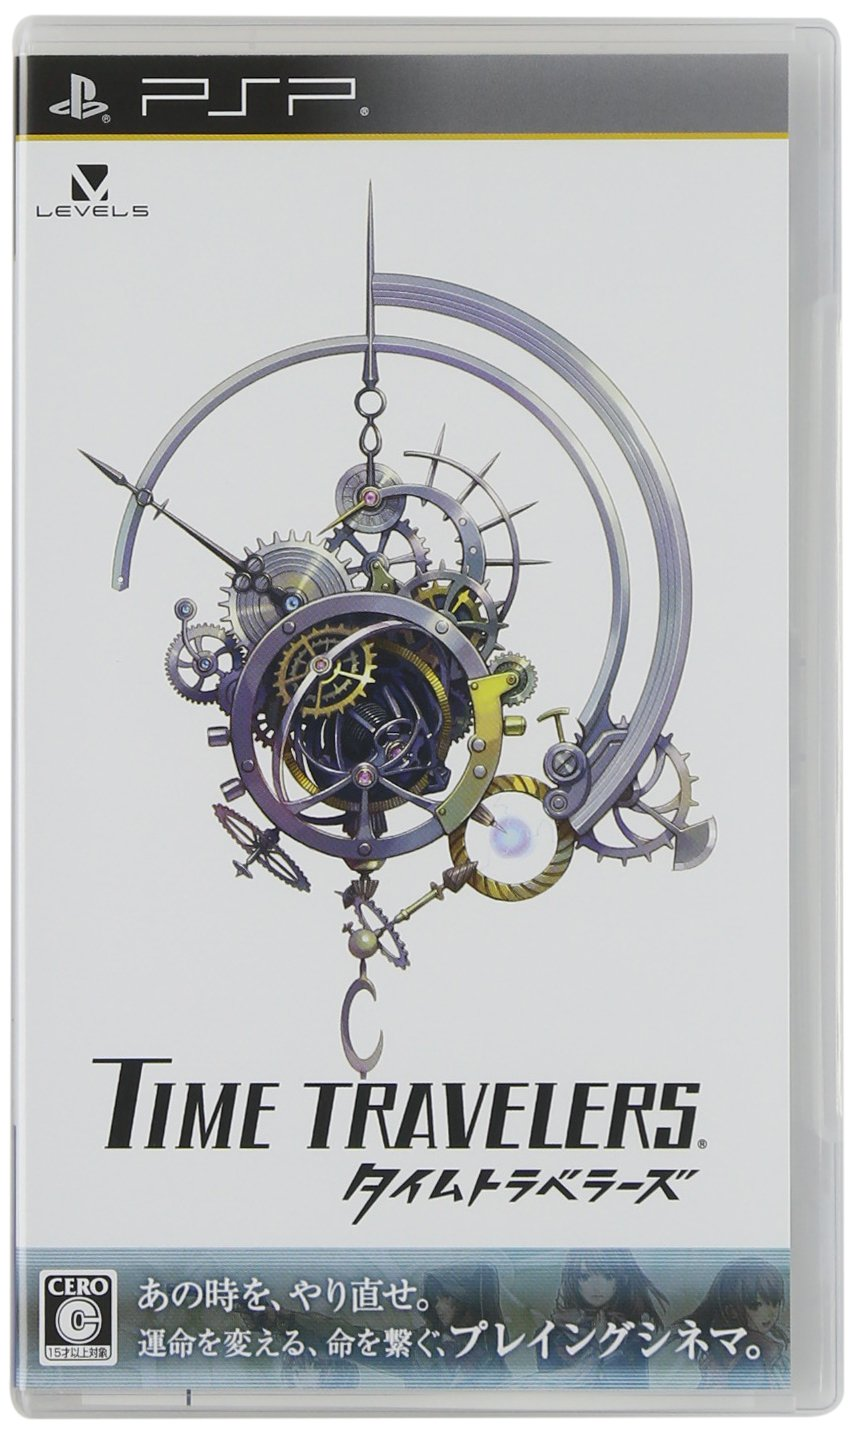 Time Travelers [Japan Import]